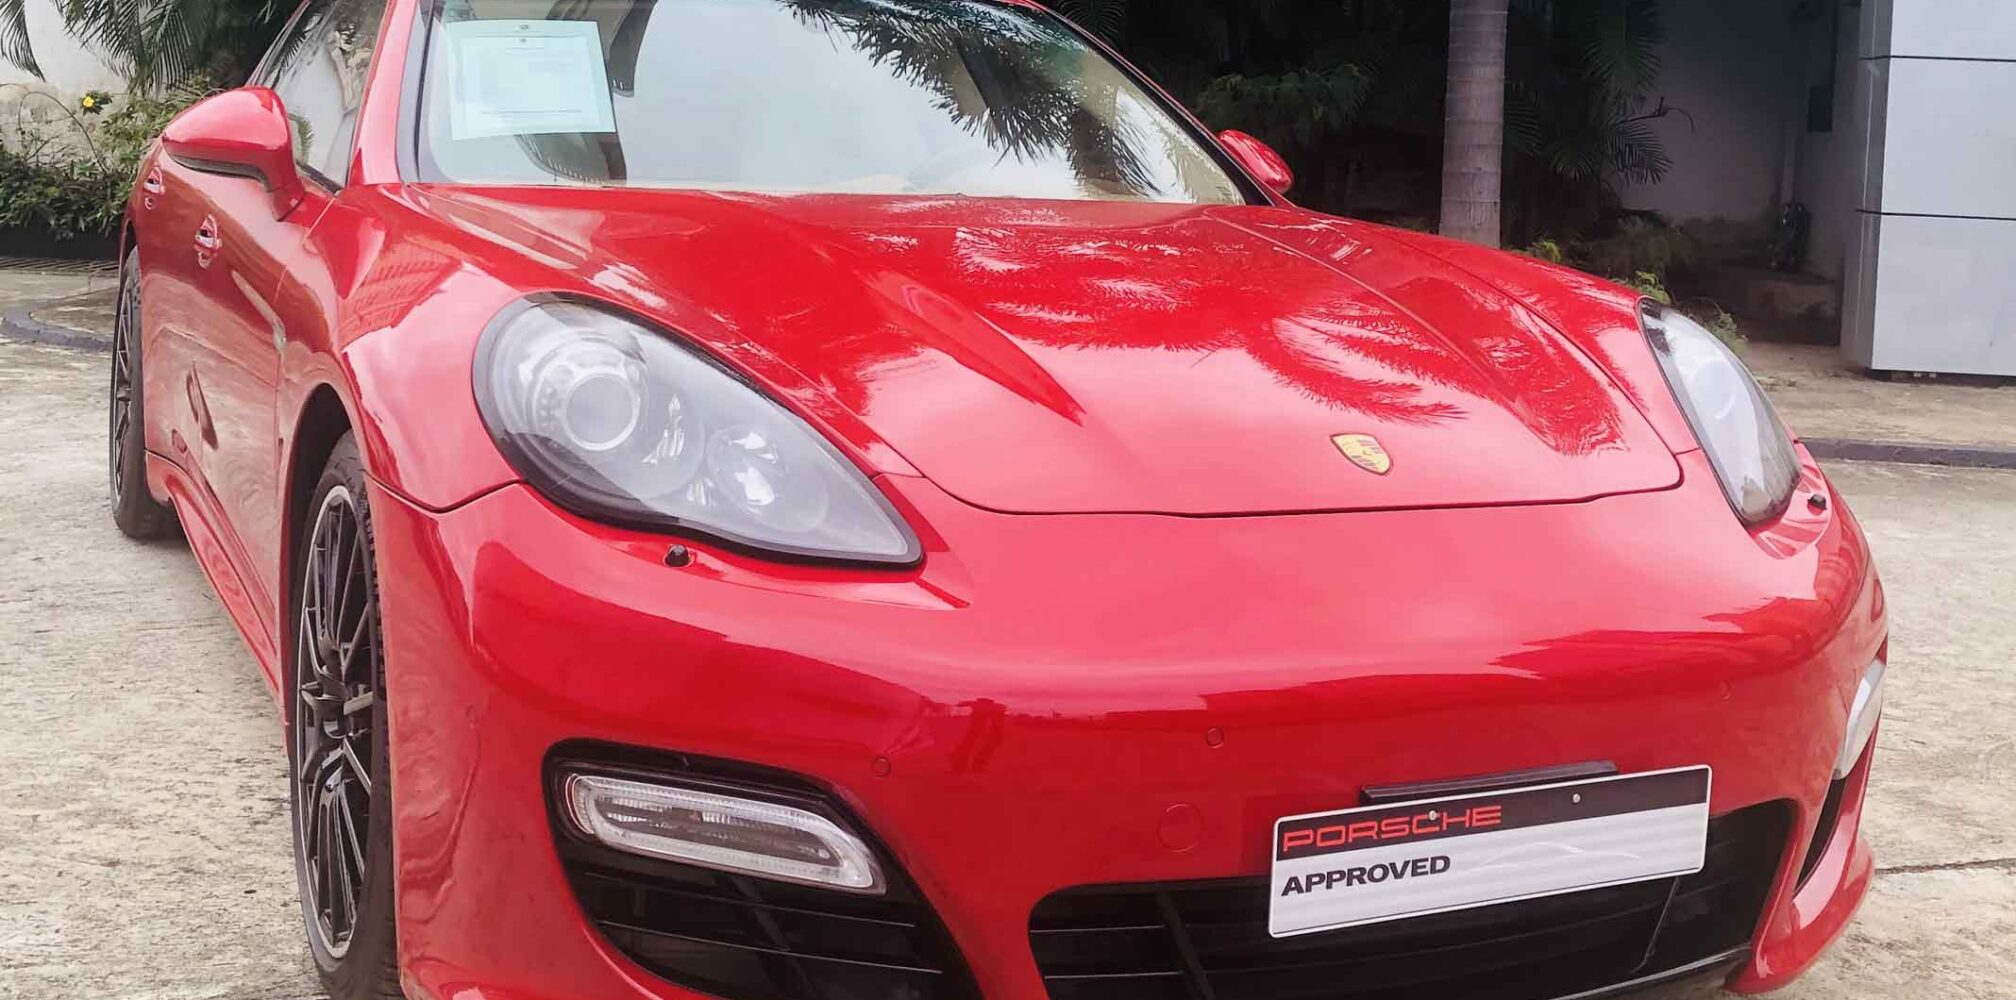 stallion approved - porsche panamera gts front view